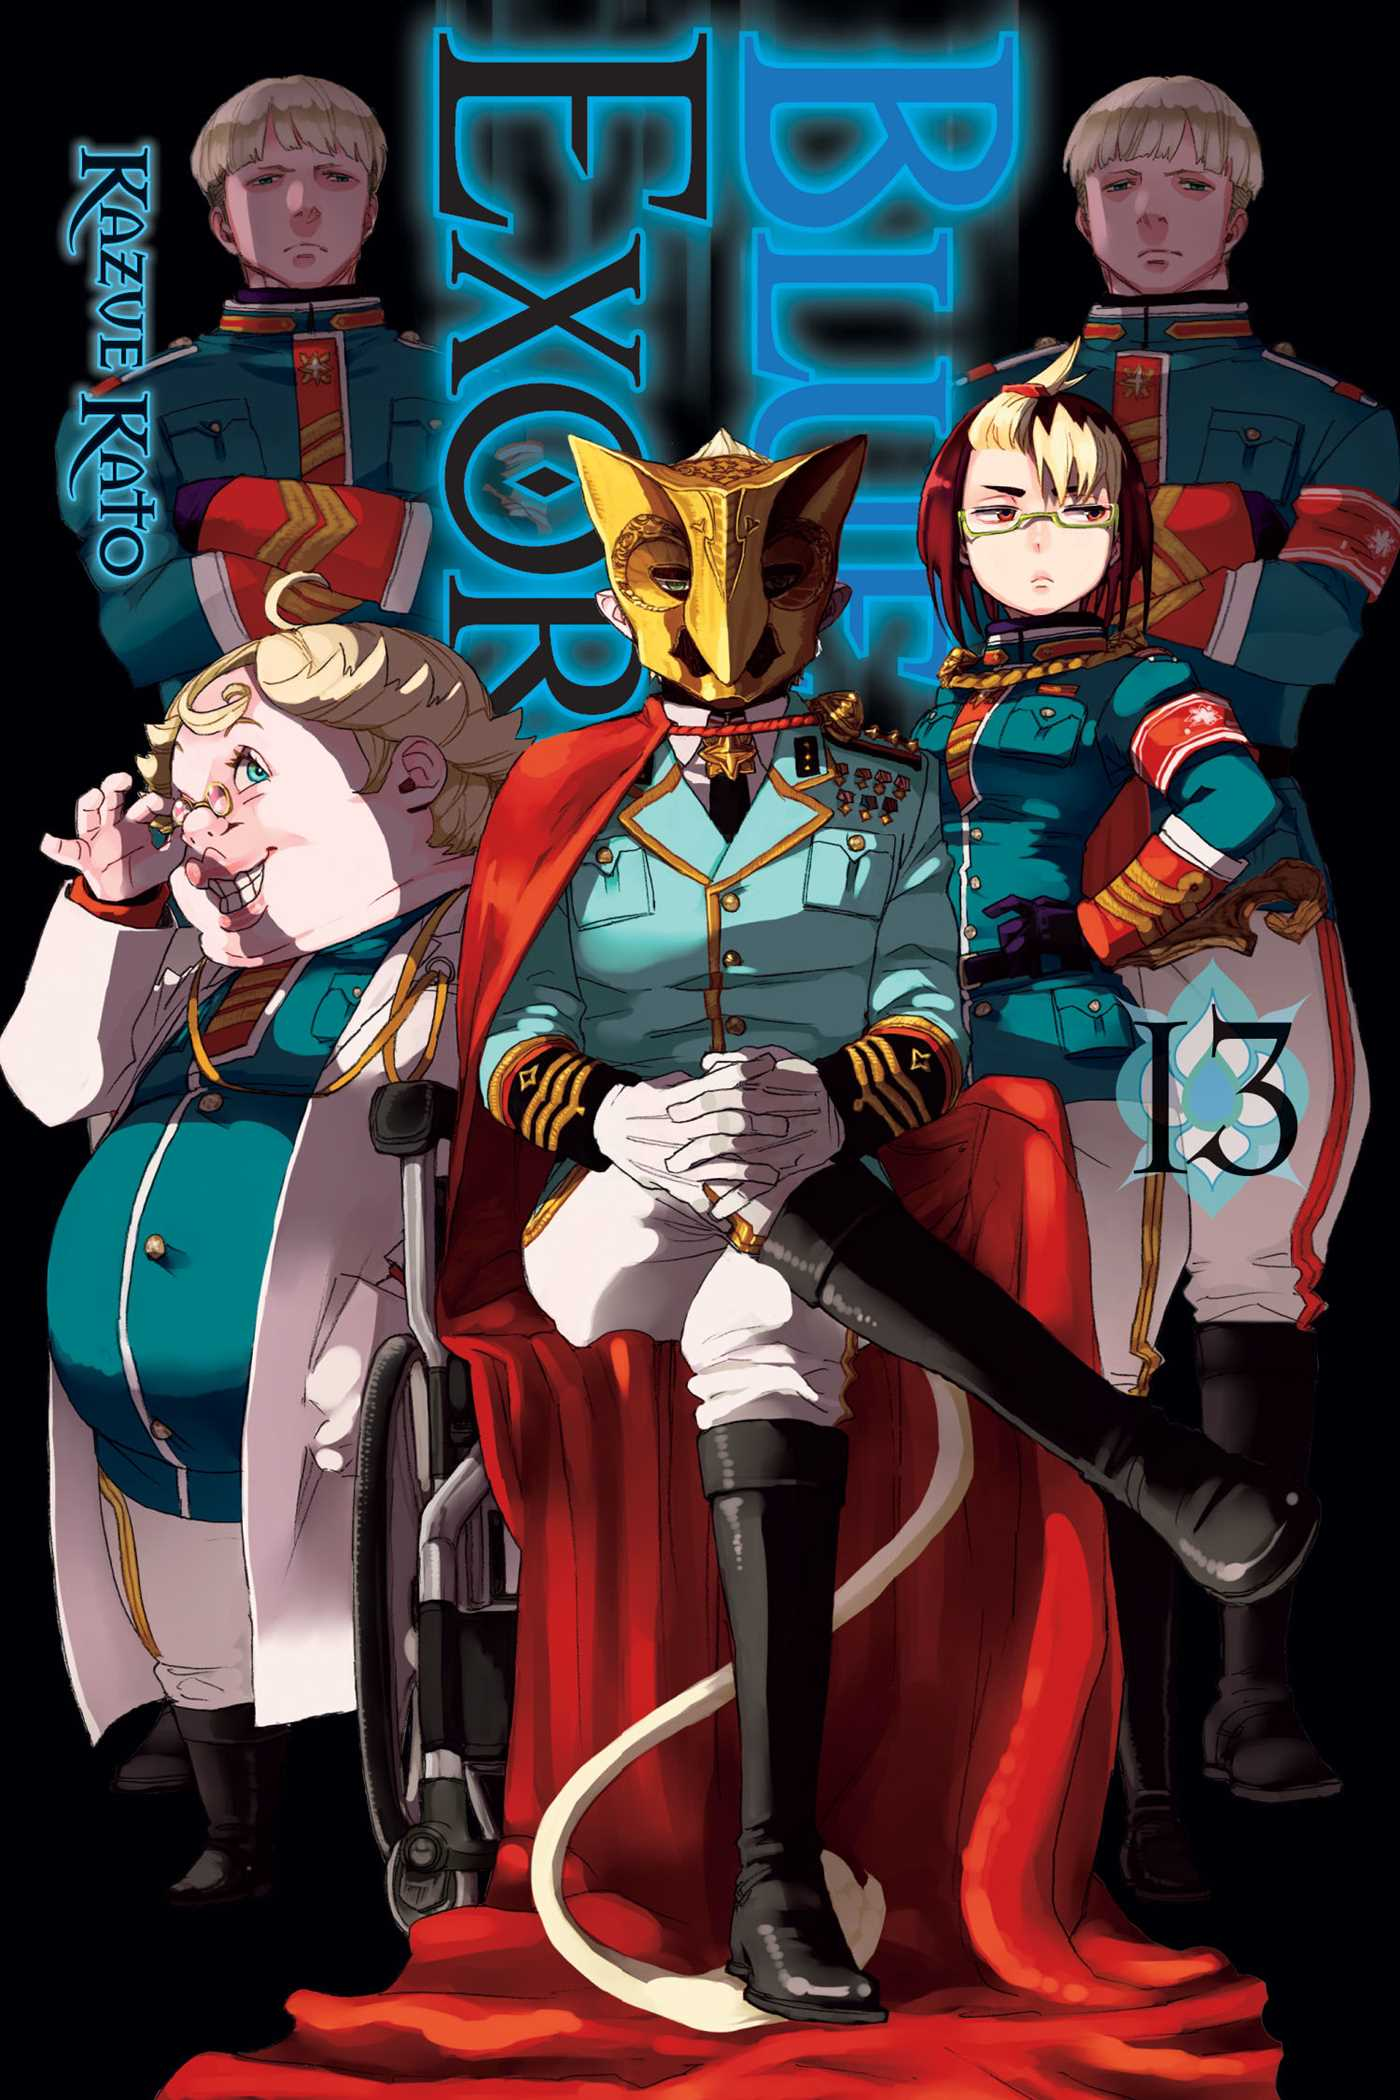 Blue Exorcist, Vol. 13 | Book by Kazue Kato | Official Publisher Page | Simon & Schuster UK